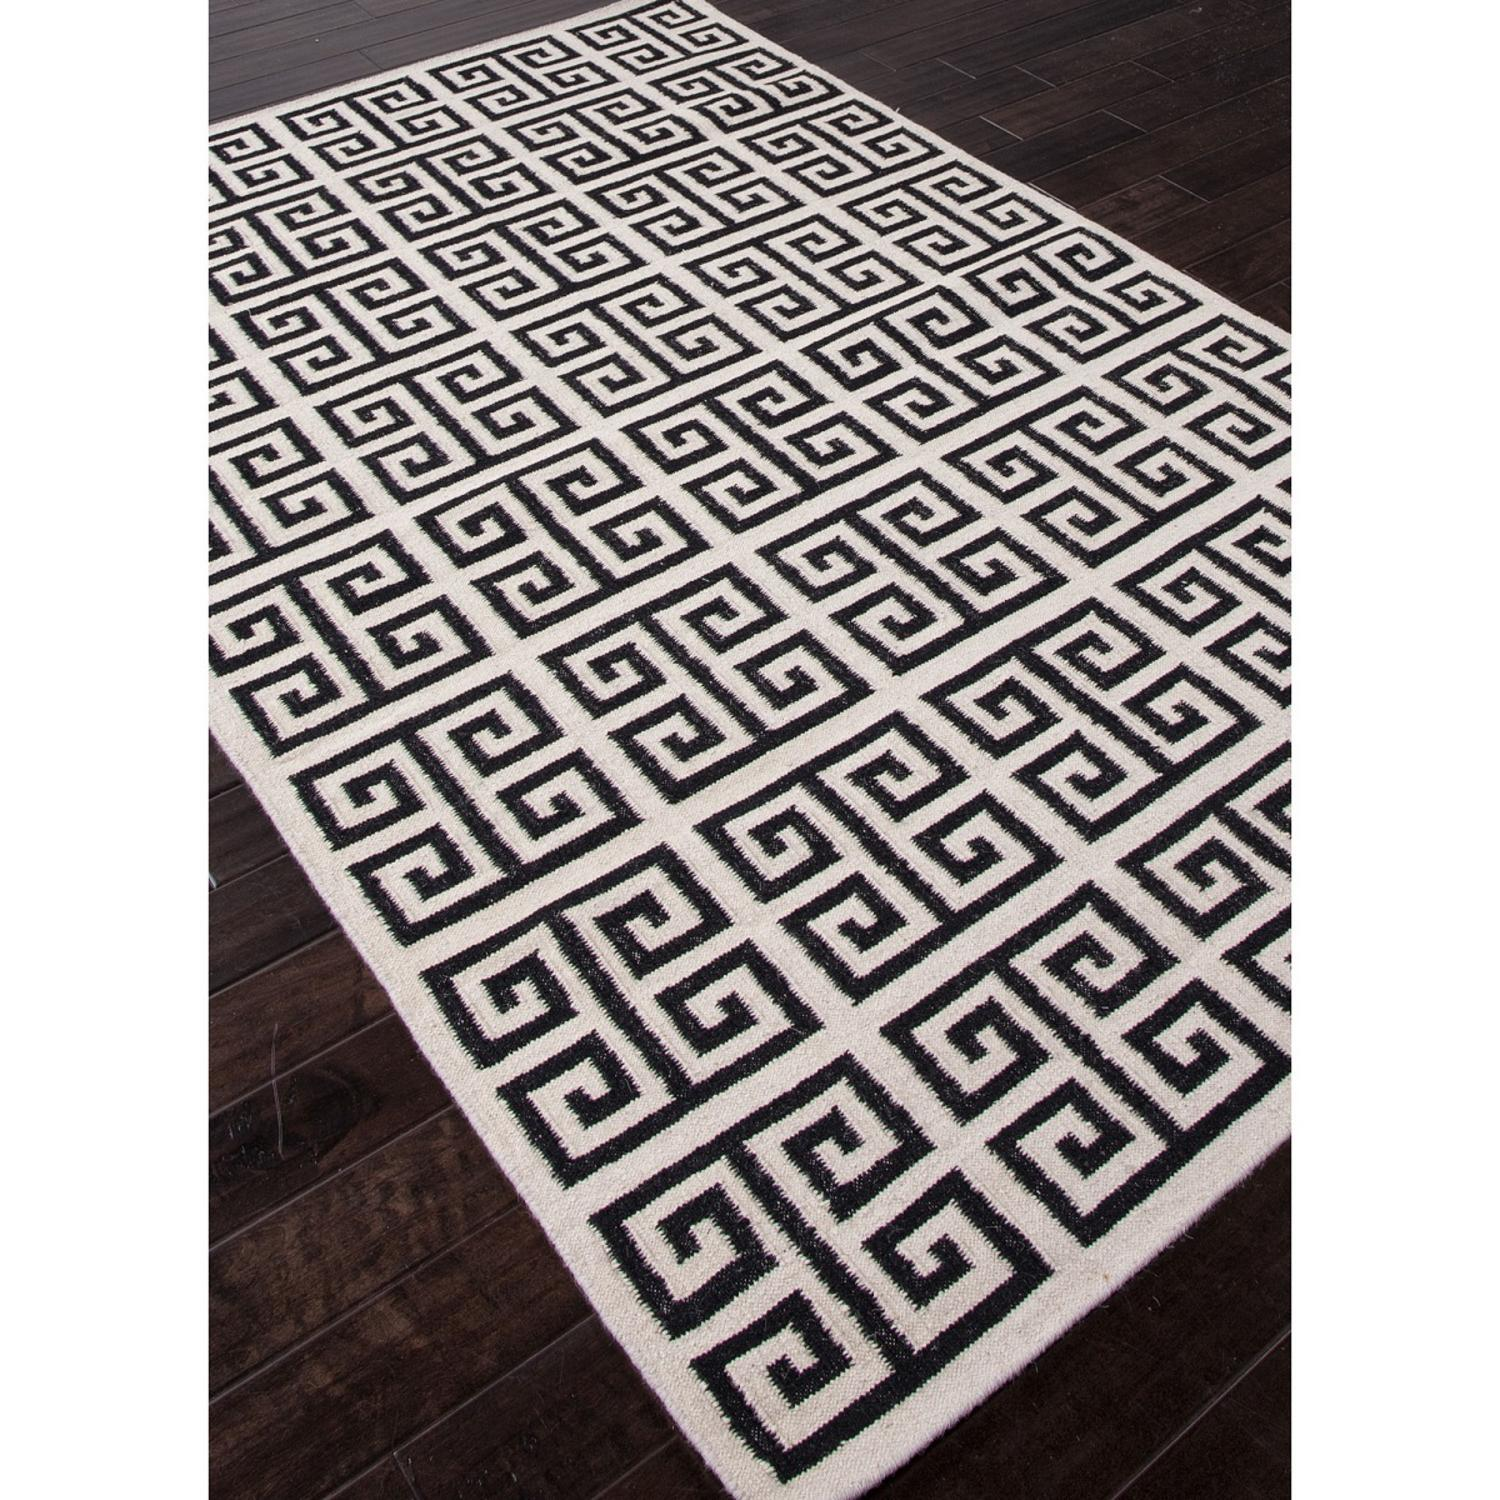 9 X 12 Ebony Black And Ivory Cream Melina Flat Weave Greek Key Design Wool Area Throw Rug